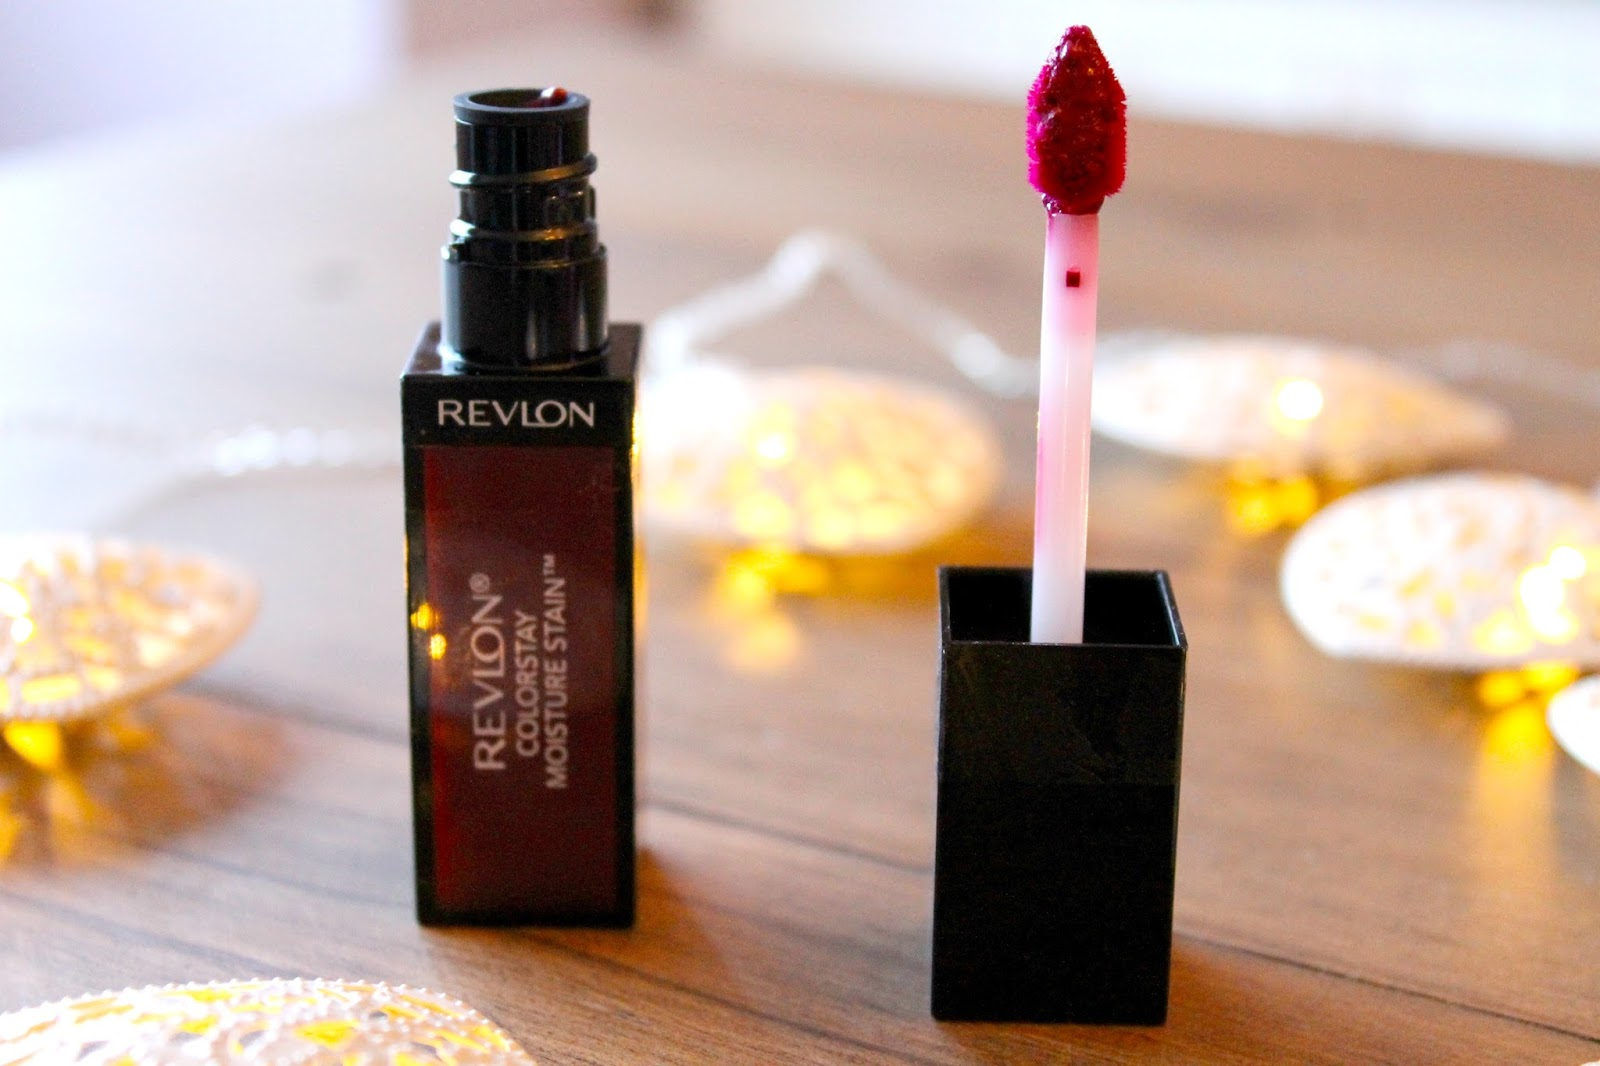 Revlon parisian passion moisture stain review